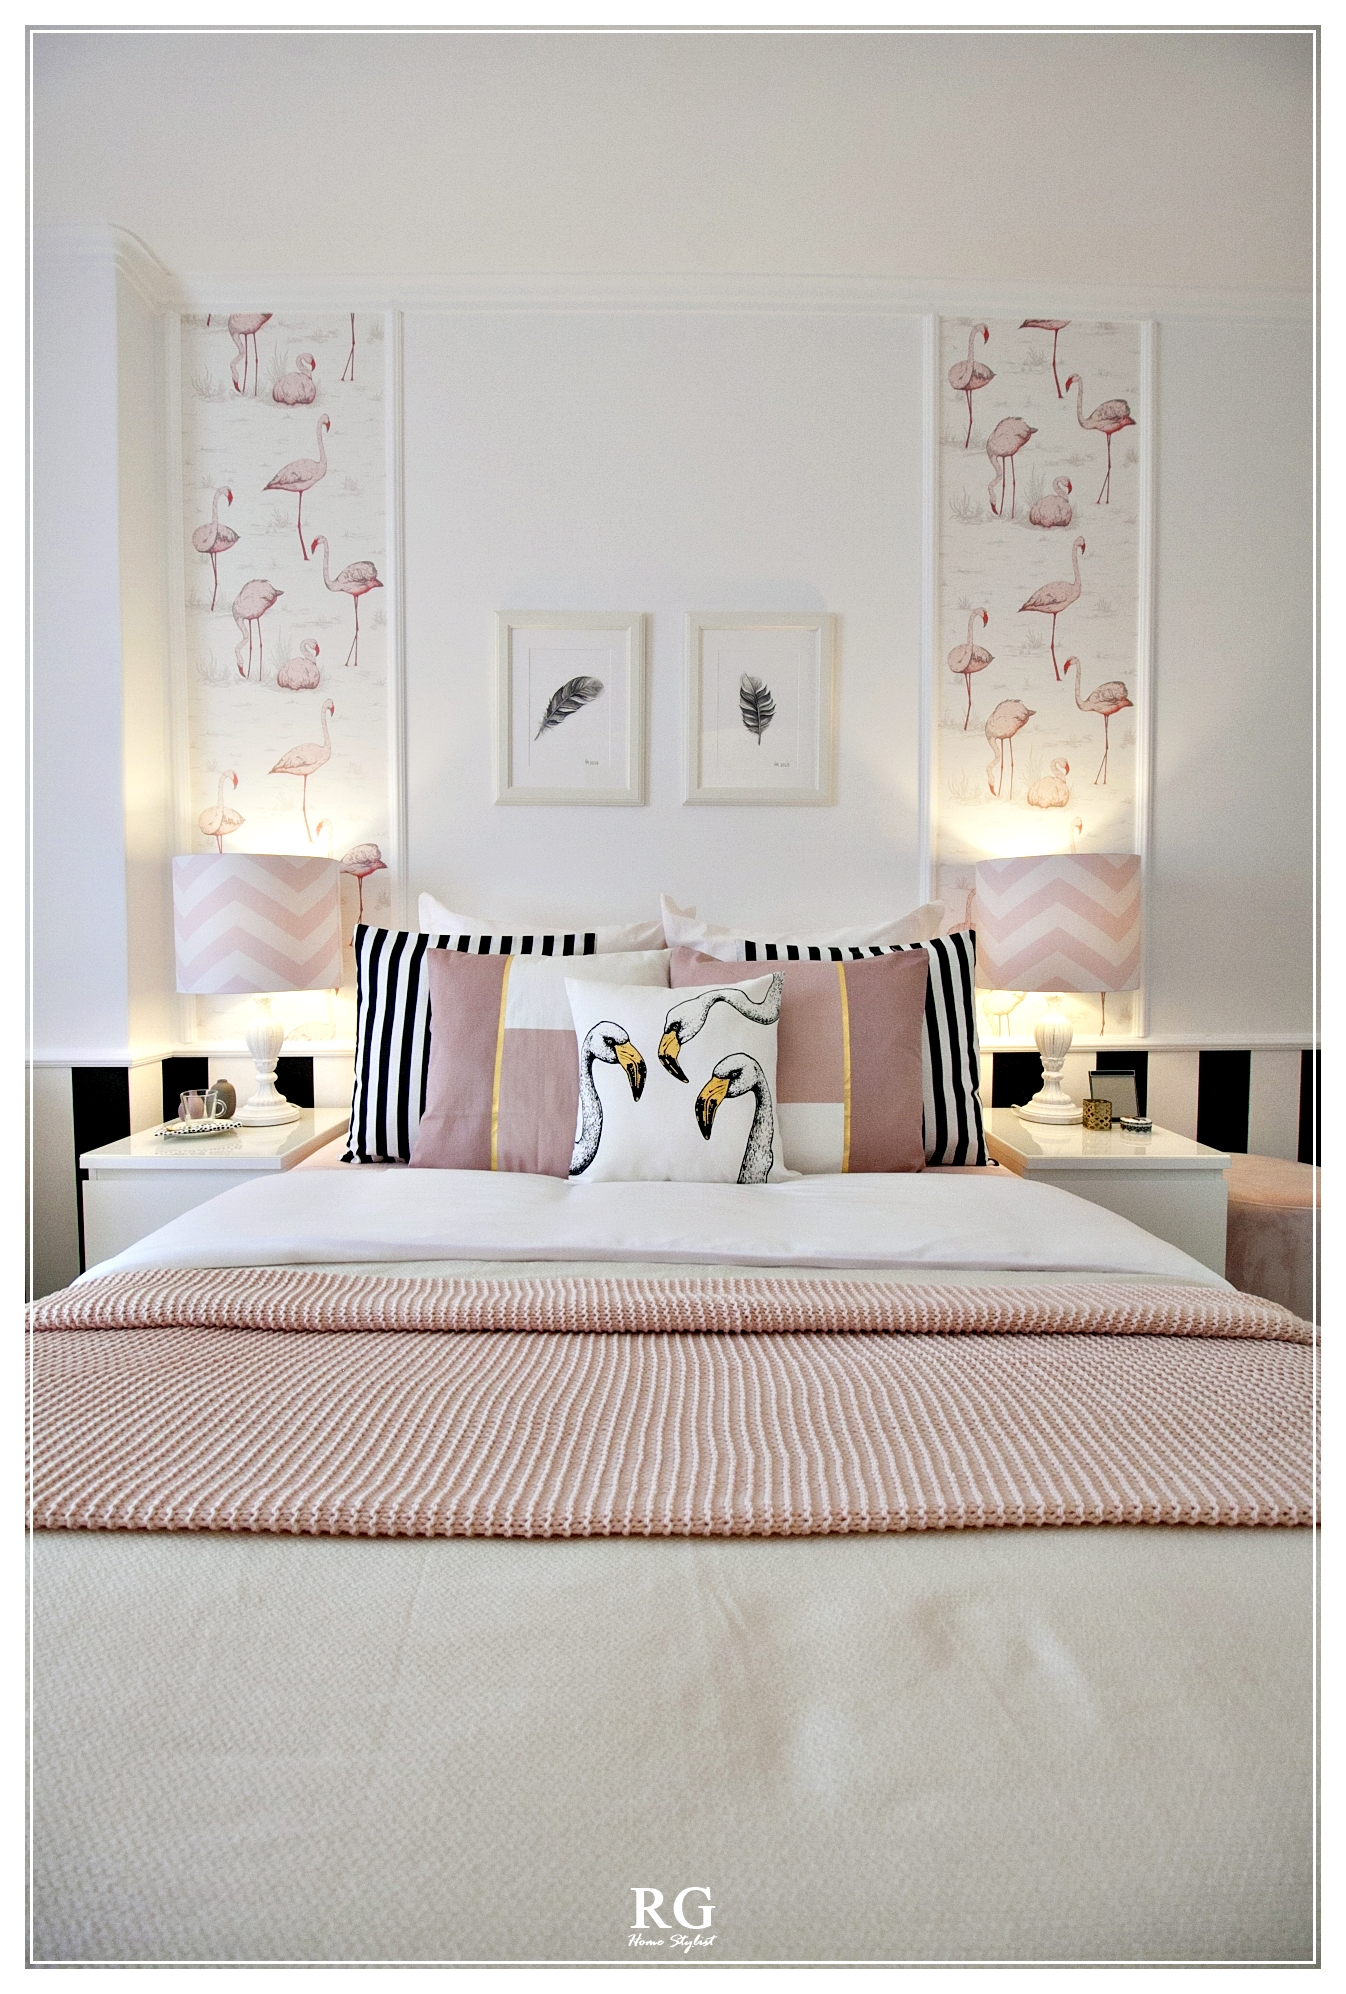 Projeto - The flamingos bedroom